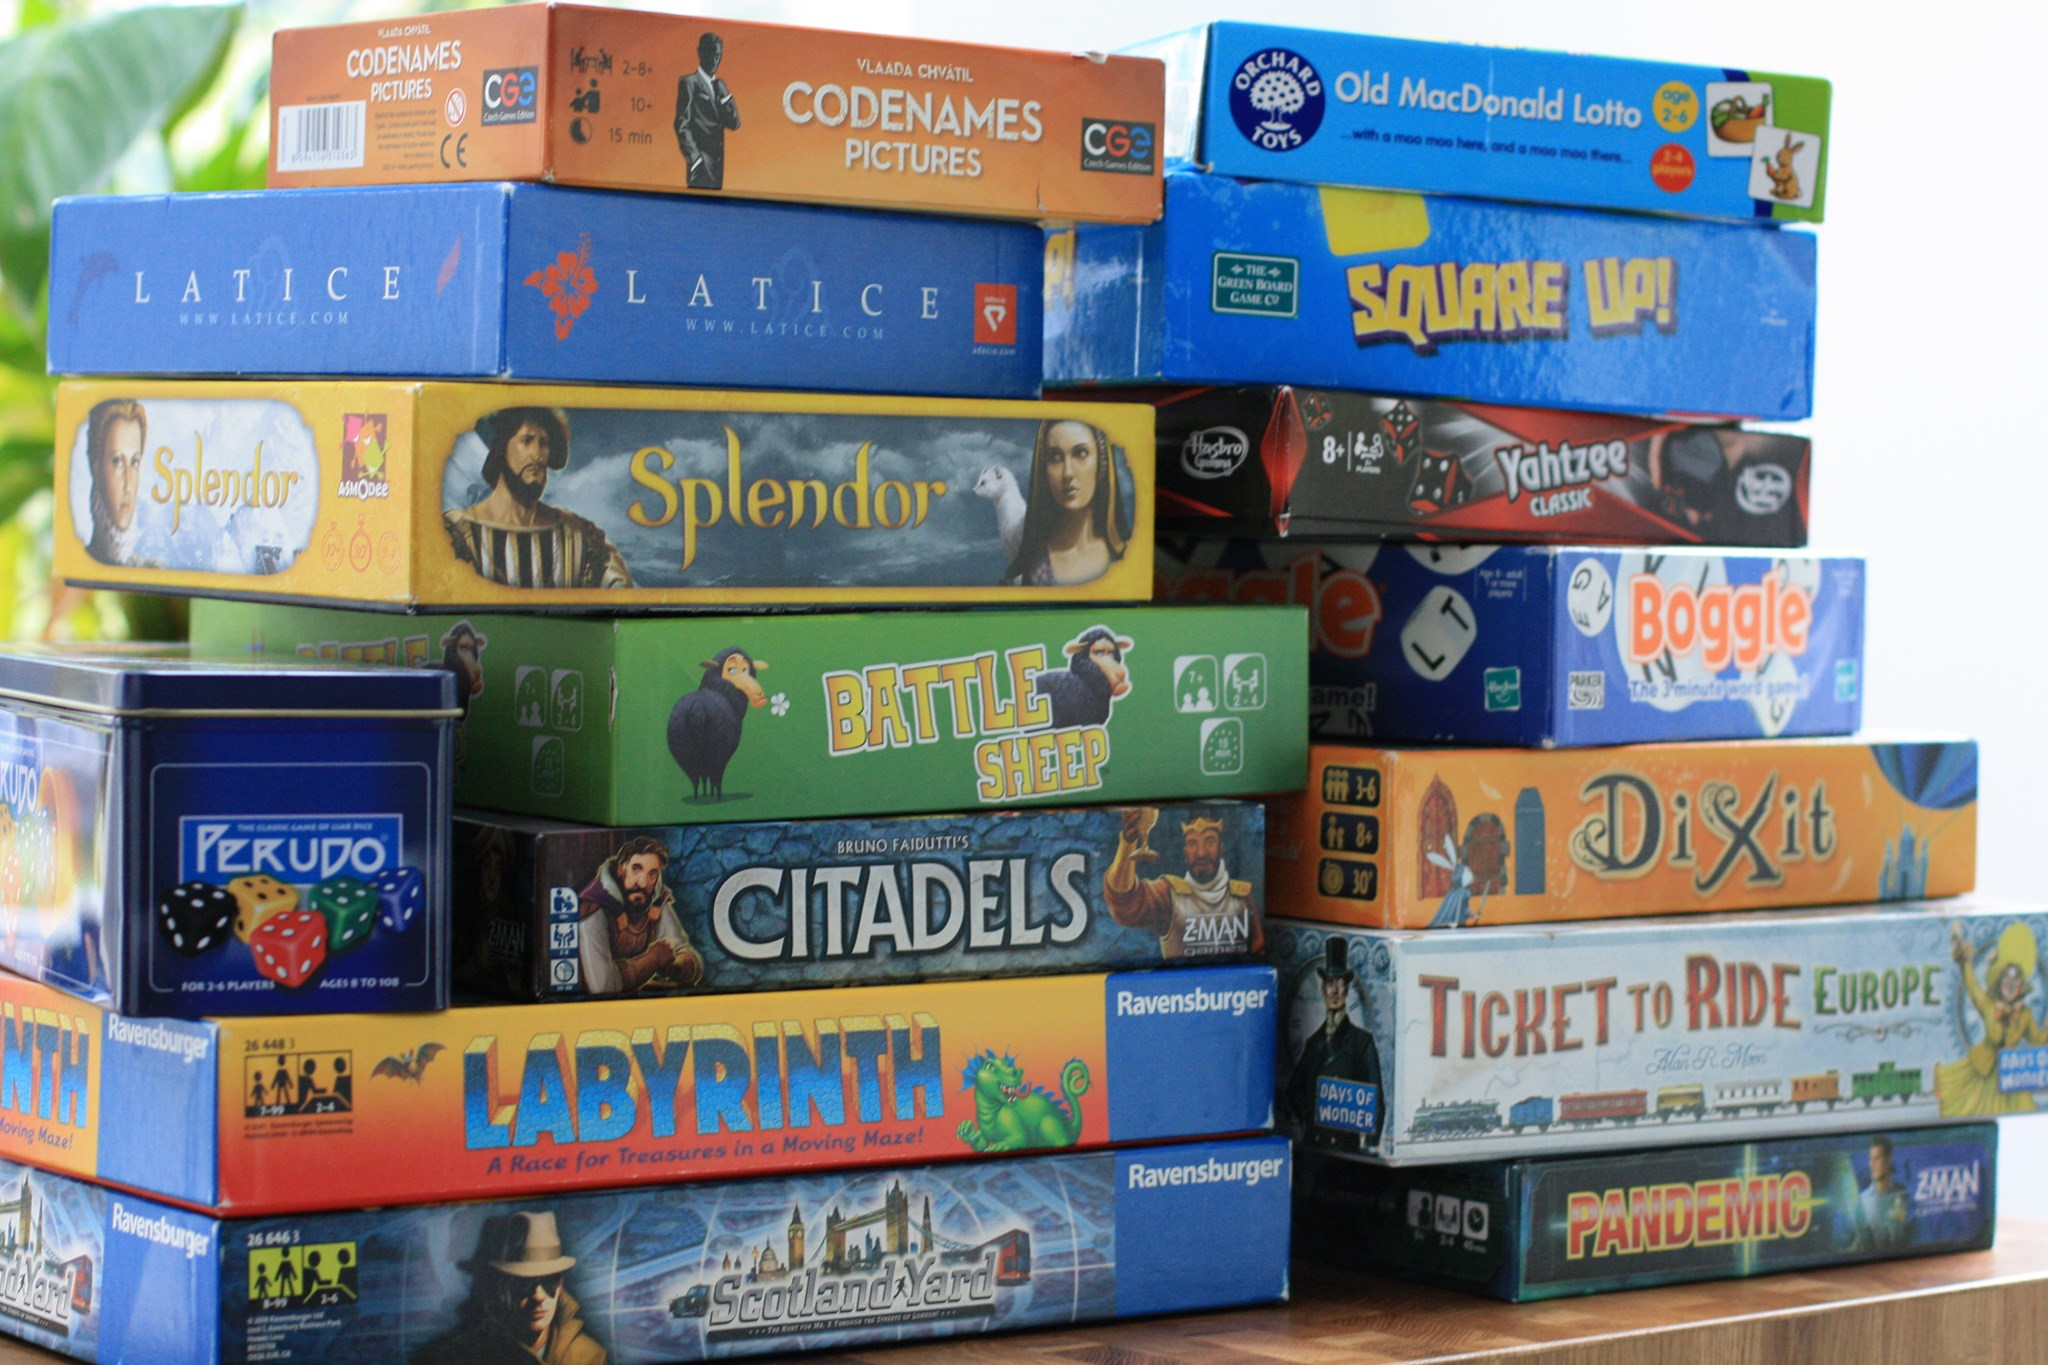 Linlithgow Board Game Club